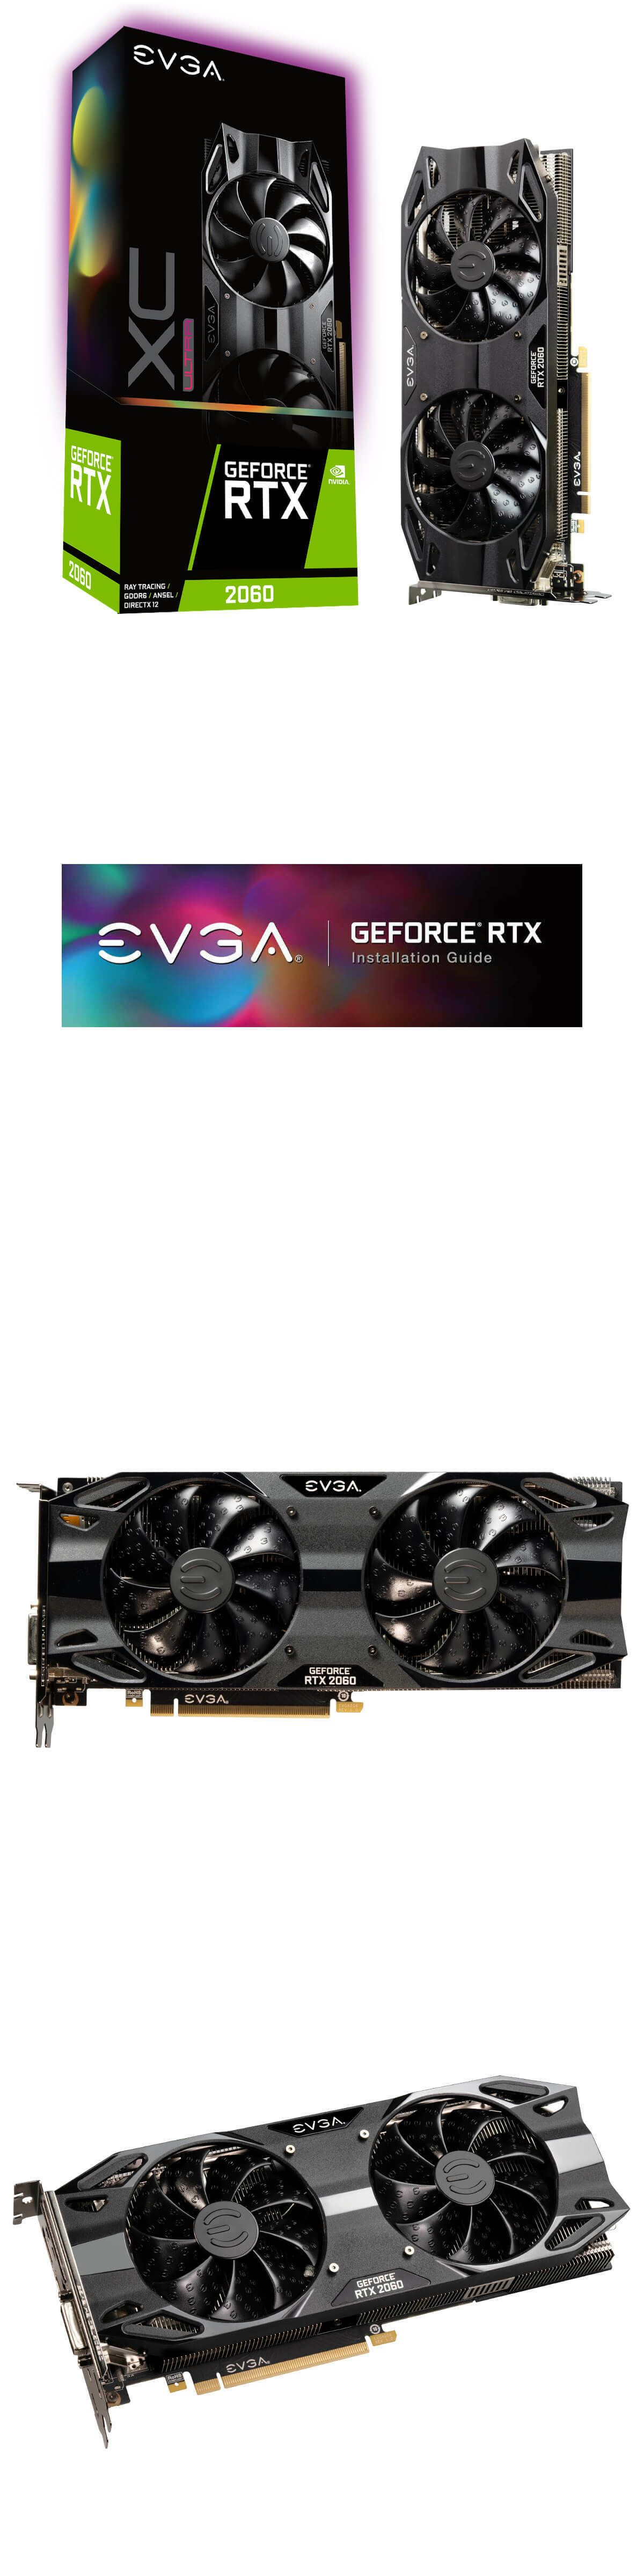 Computer Components and Parts 175673: Evga Geforce Rtx 2060